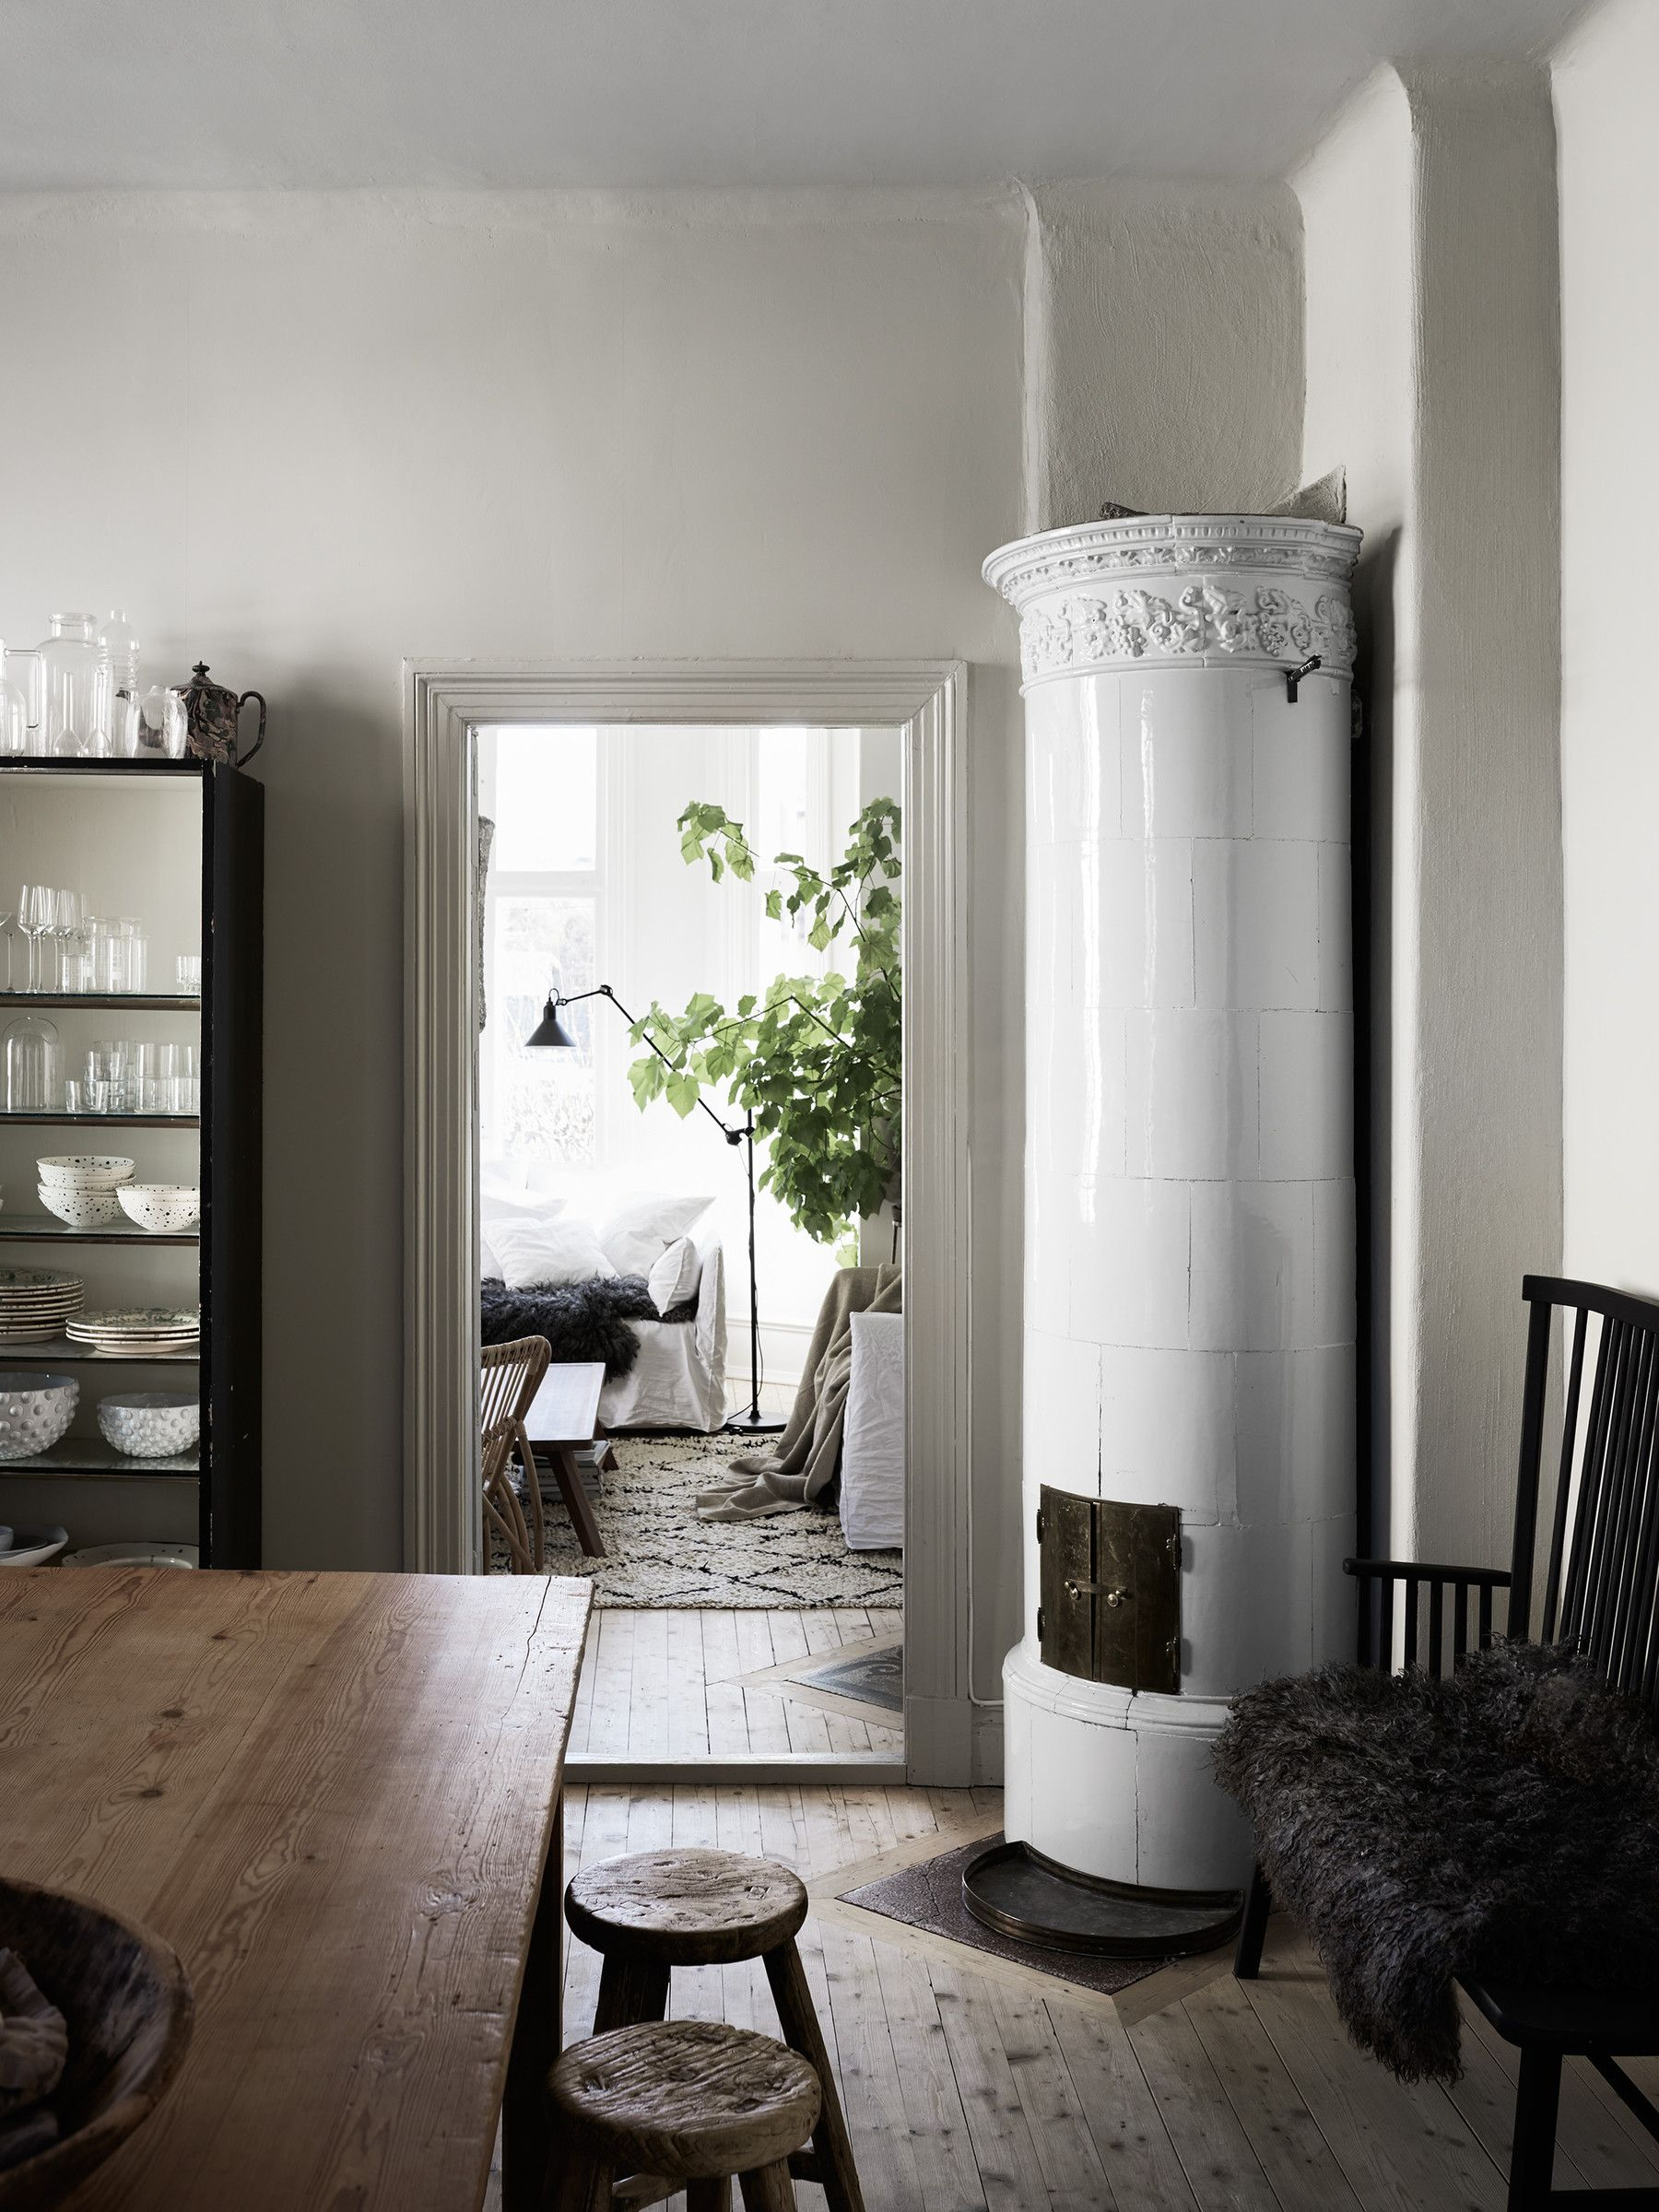 The Home Of Artilleriet Founders Christian And Bjorn Showcases The